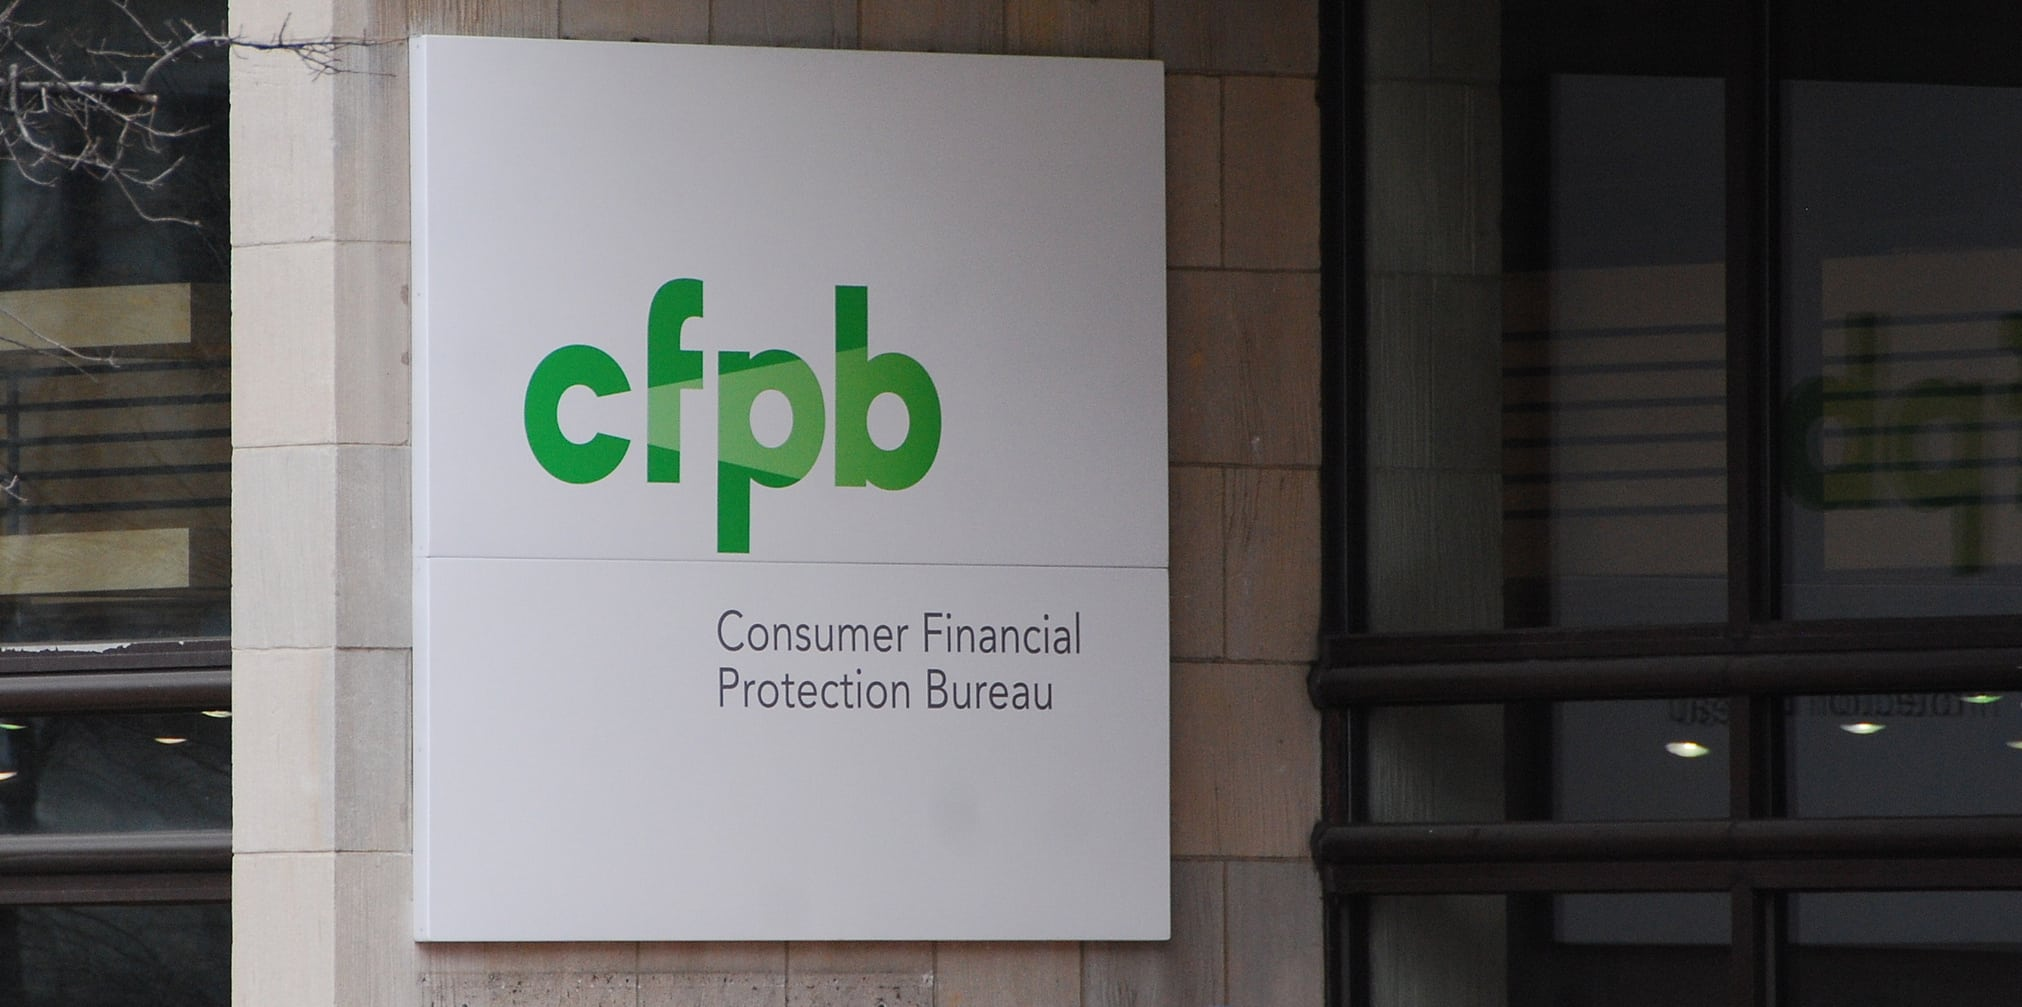 Appeals Court Will Rehear Case Involving Constitutionality Of Consumer Financial Protection Bureau